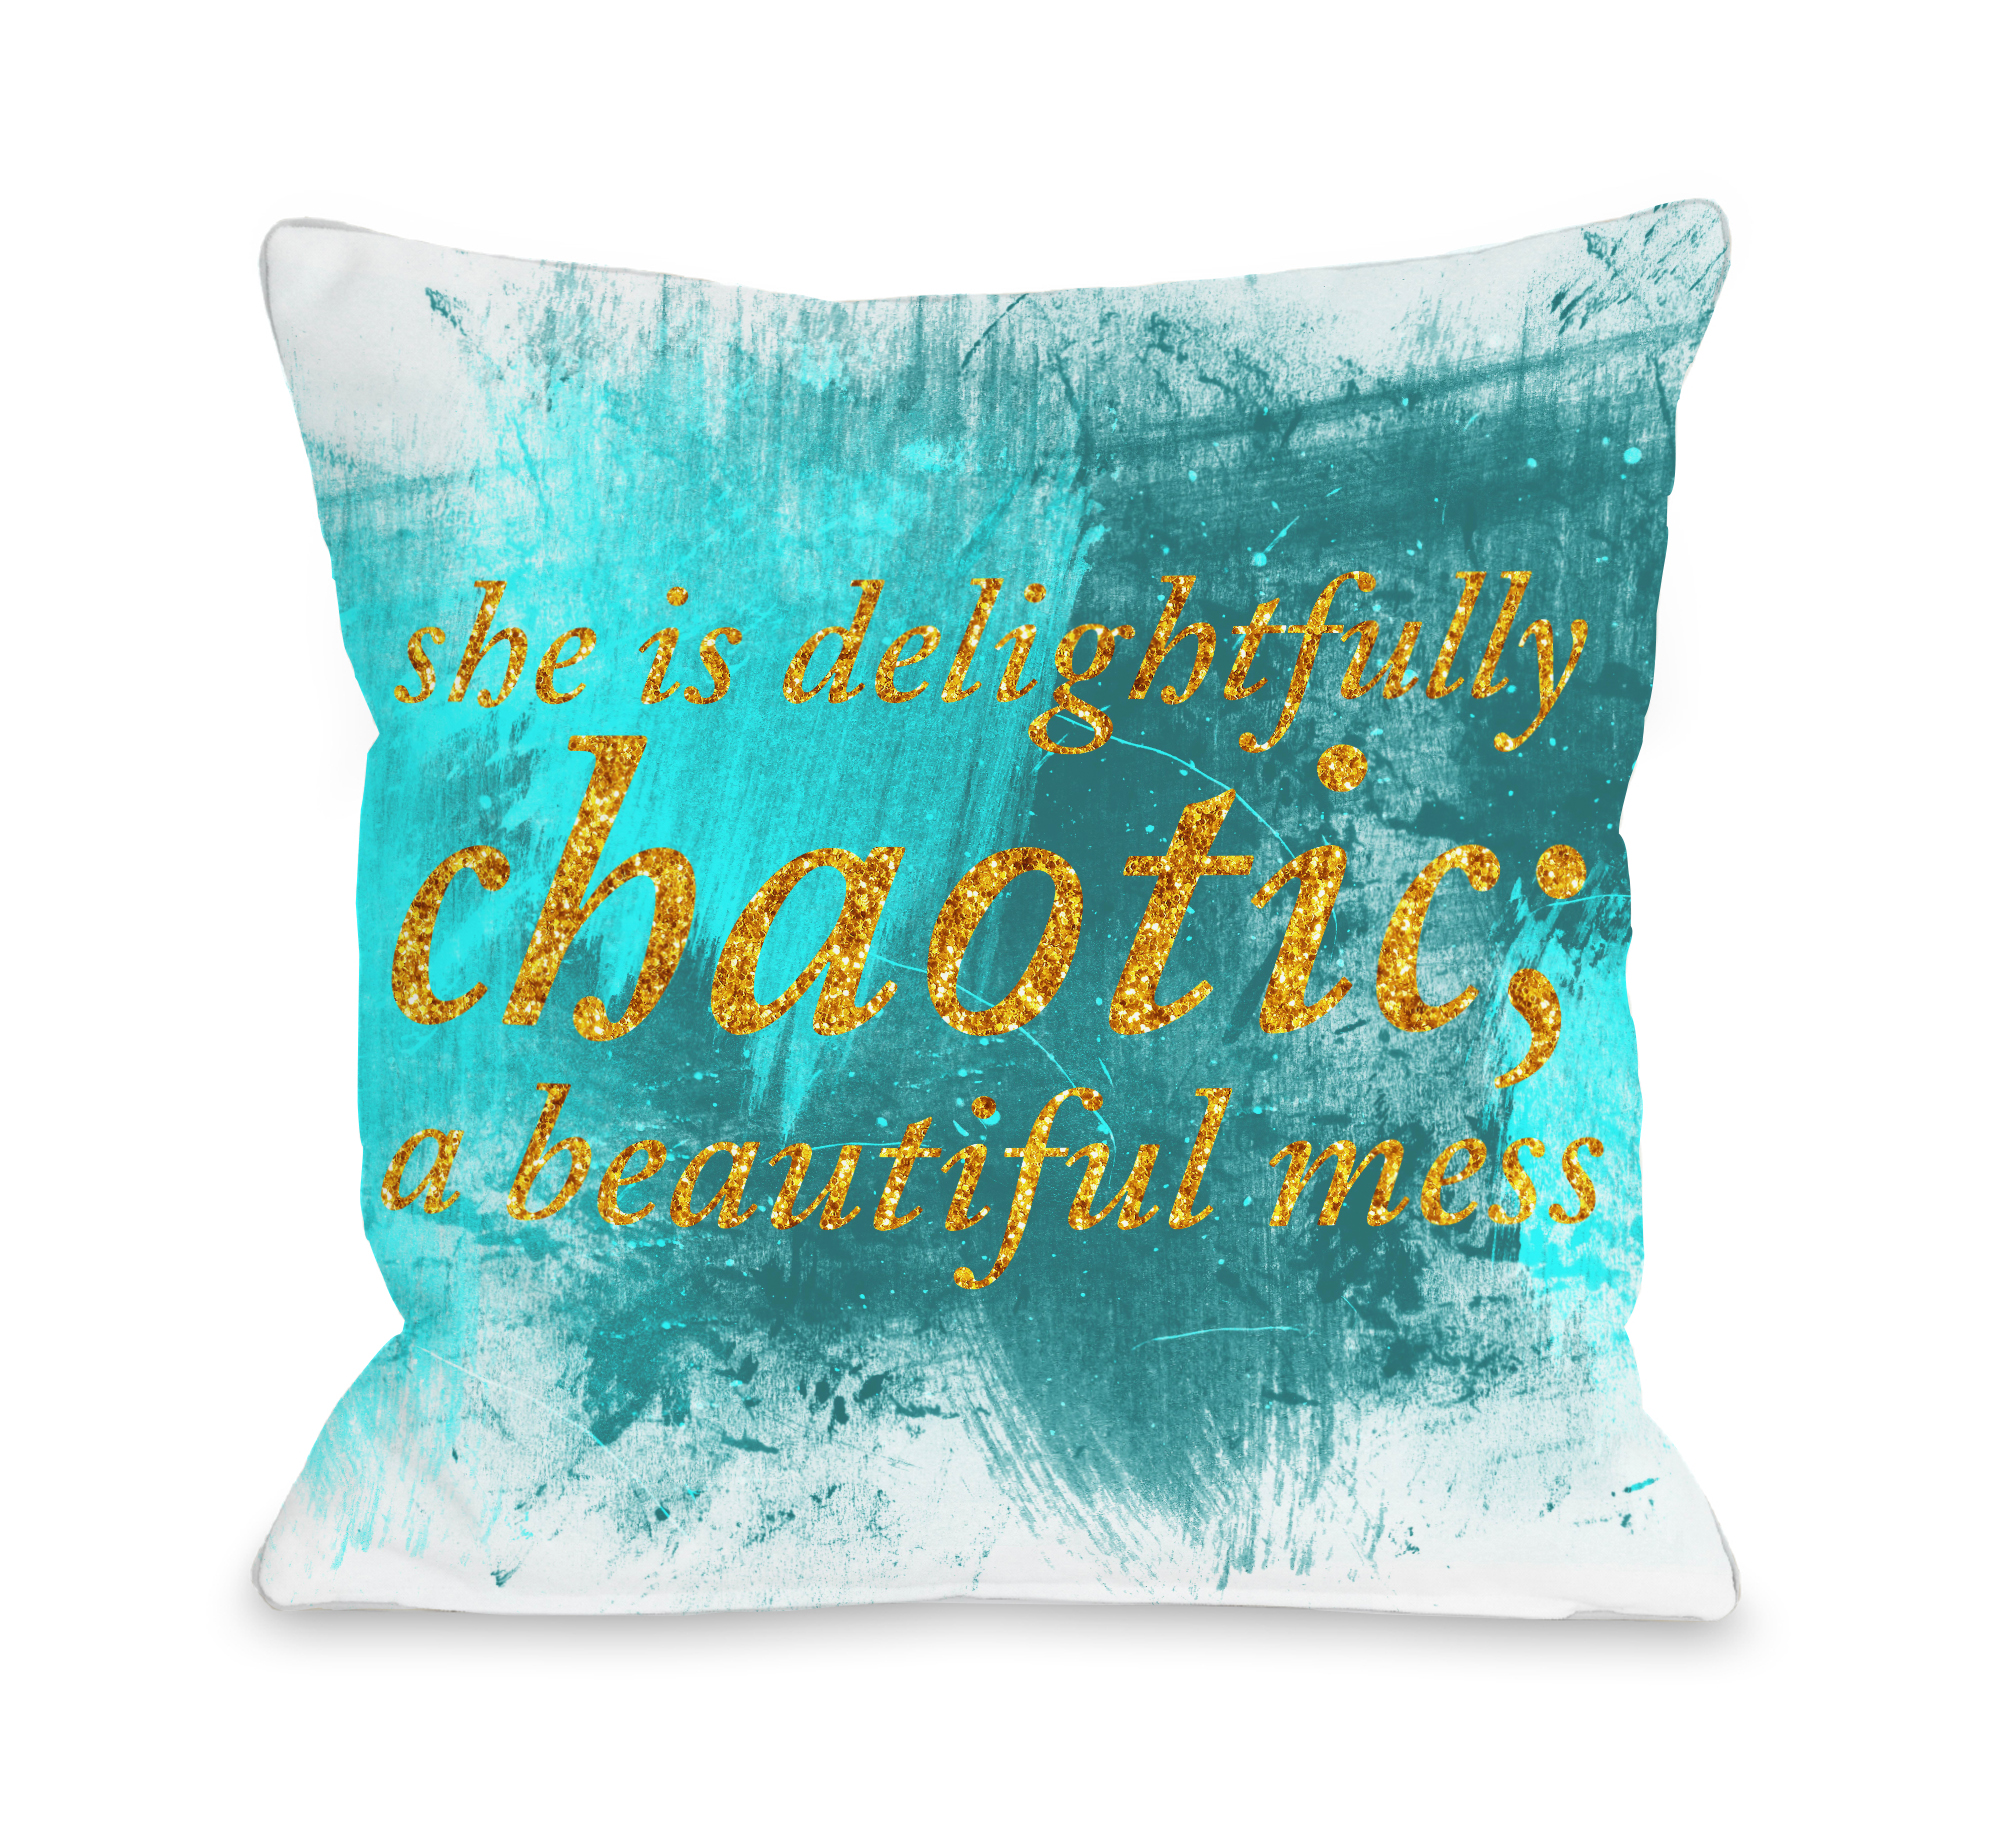 Delightfully Chaotic - White Turquoise 18x18 Pillow by OBC